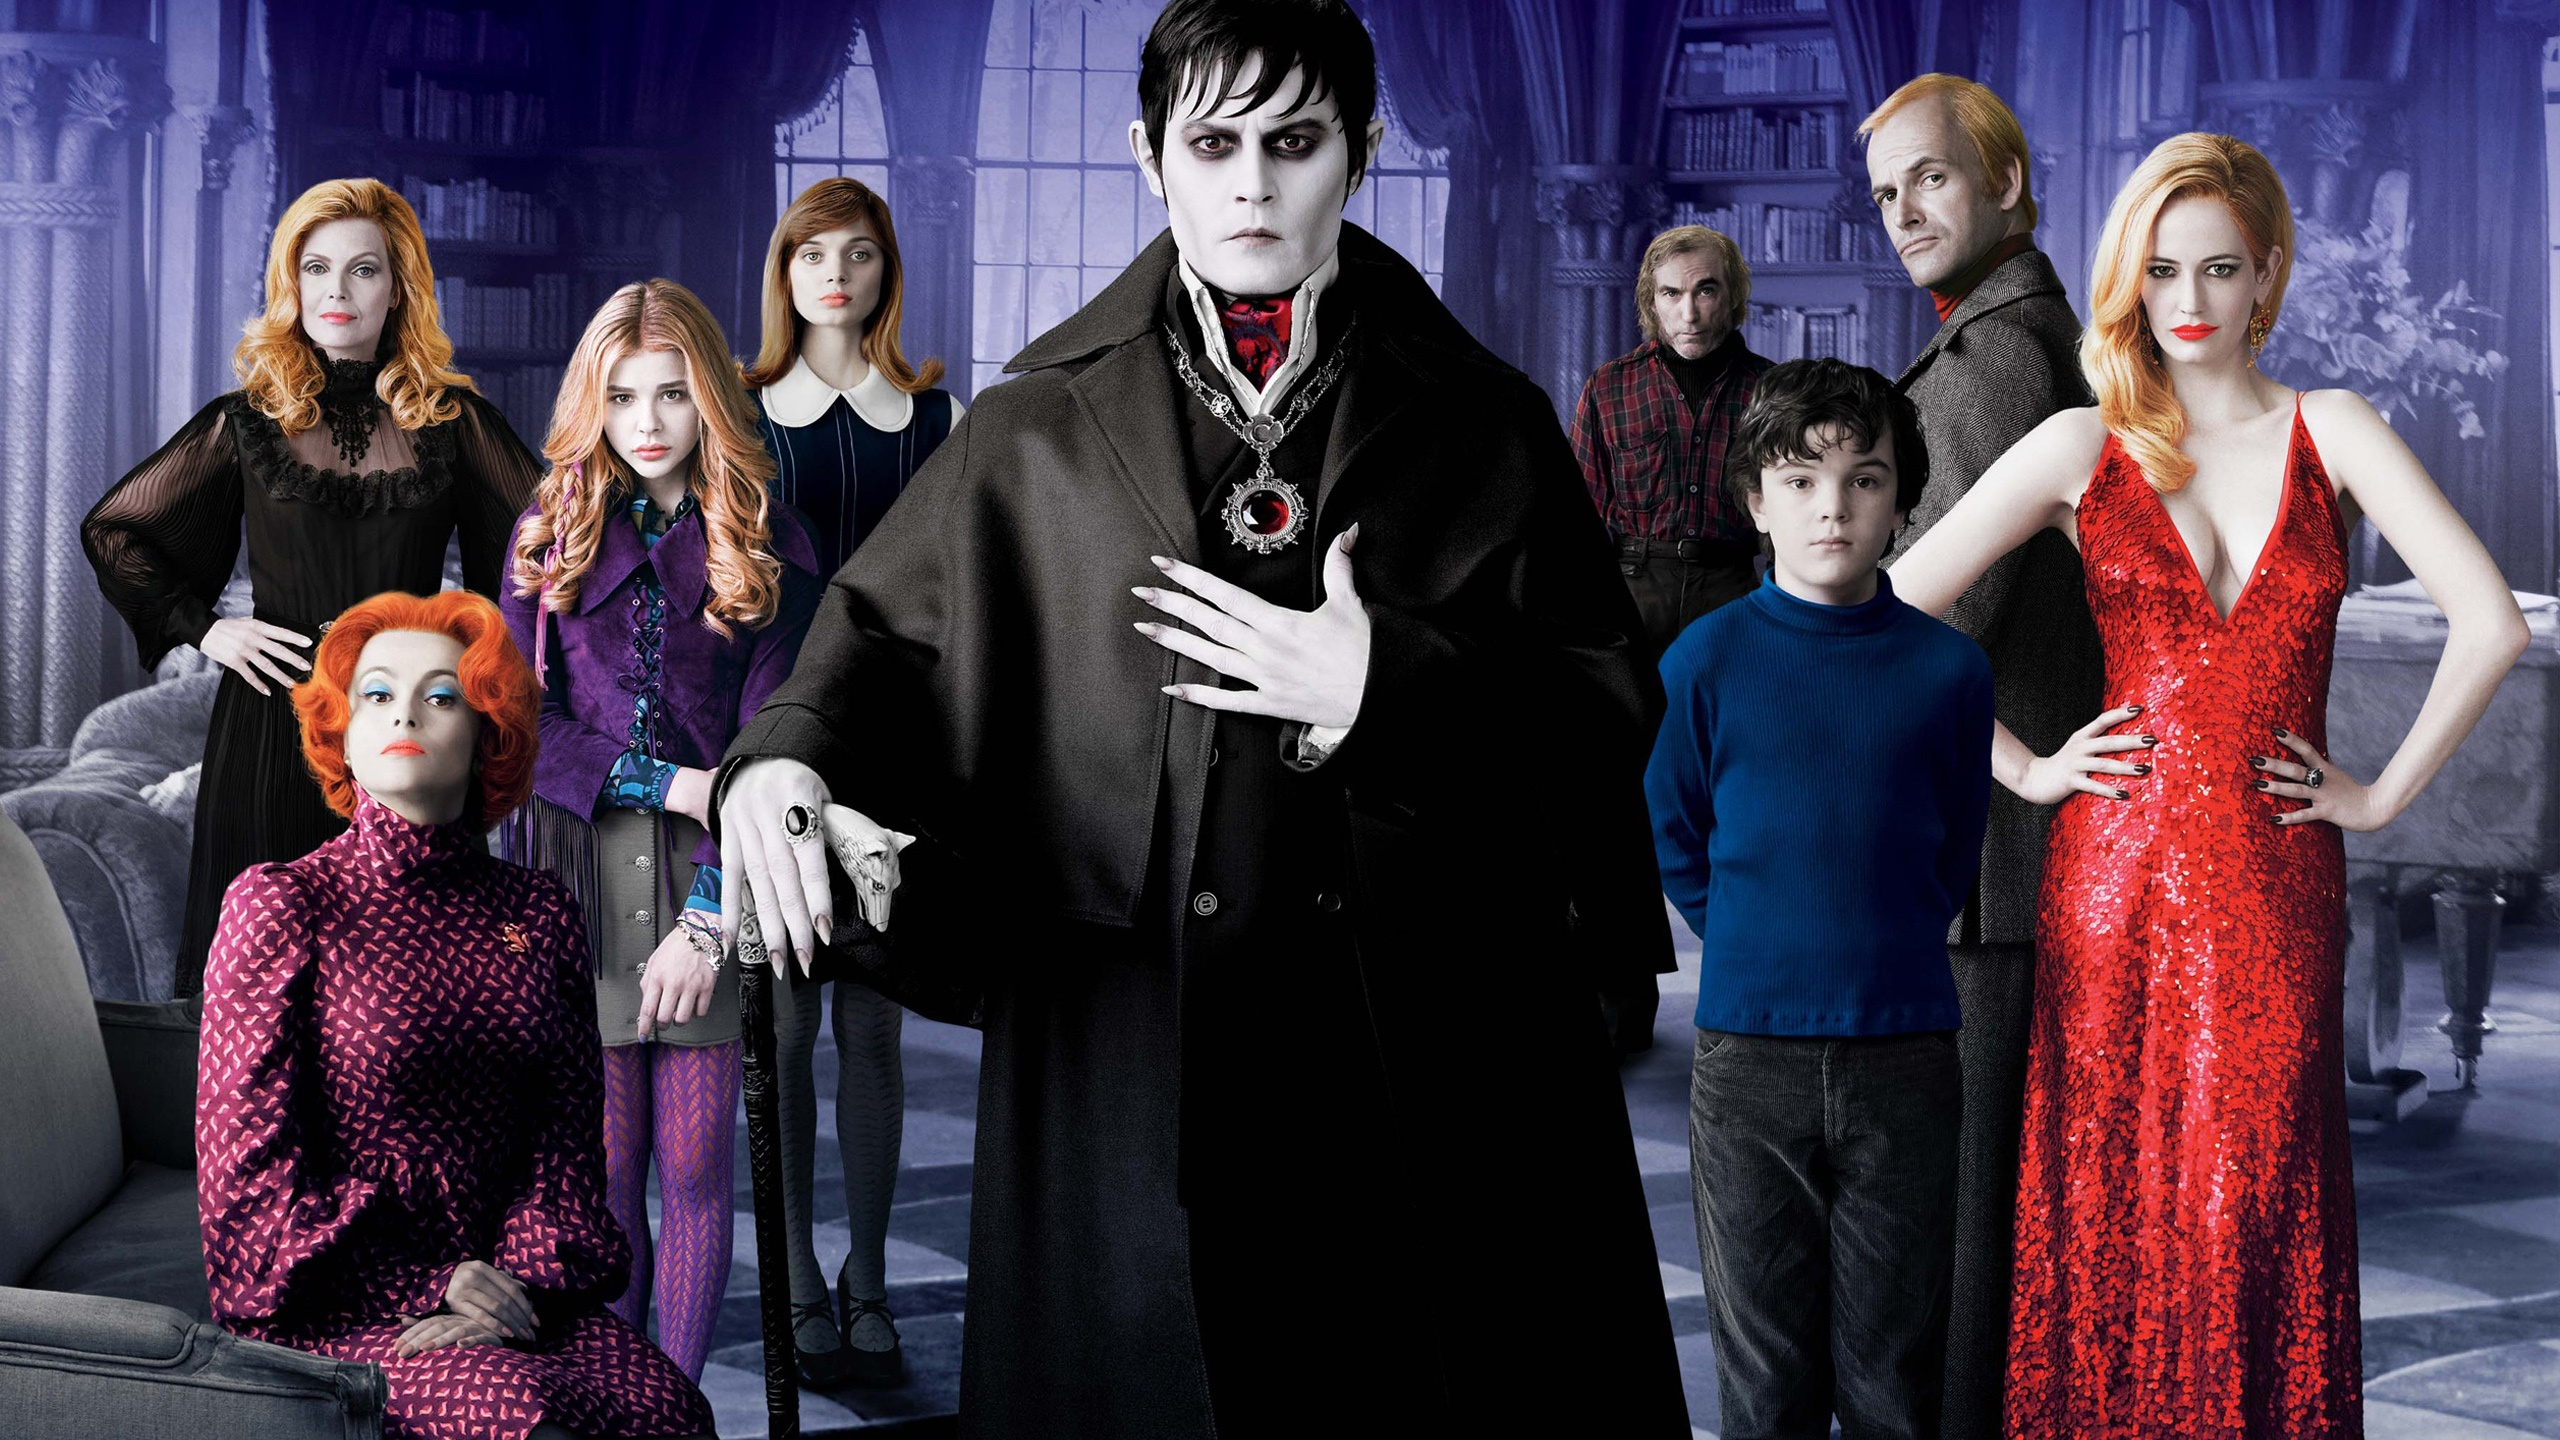 Dark Shadows HD wallpaper - 2560x1440